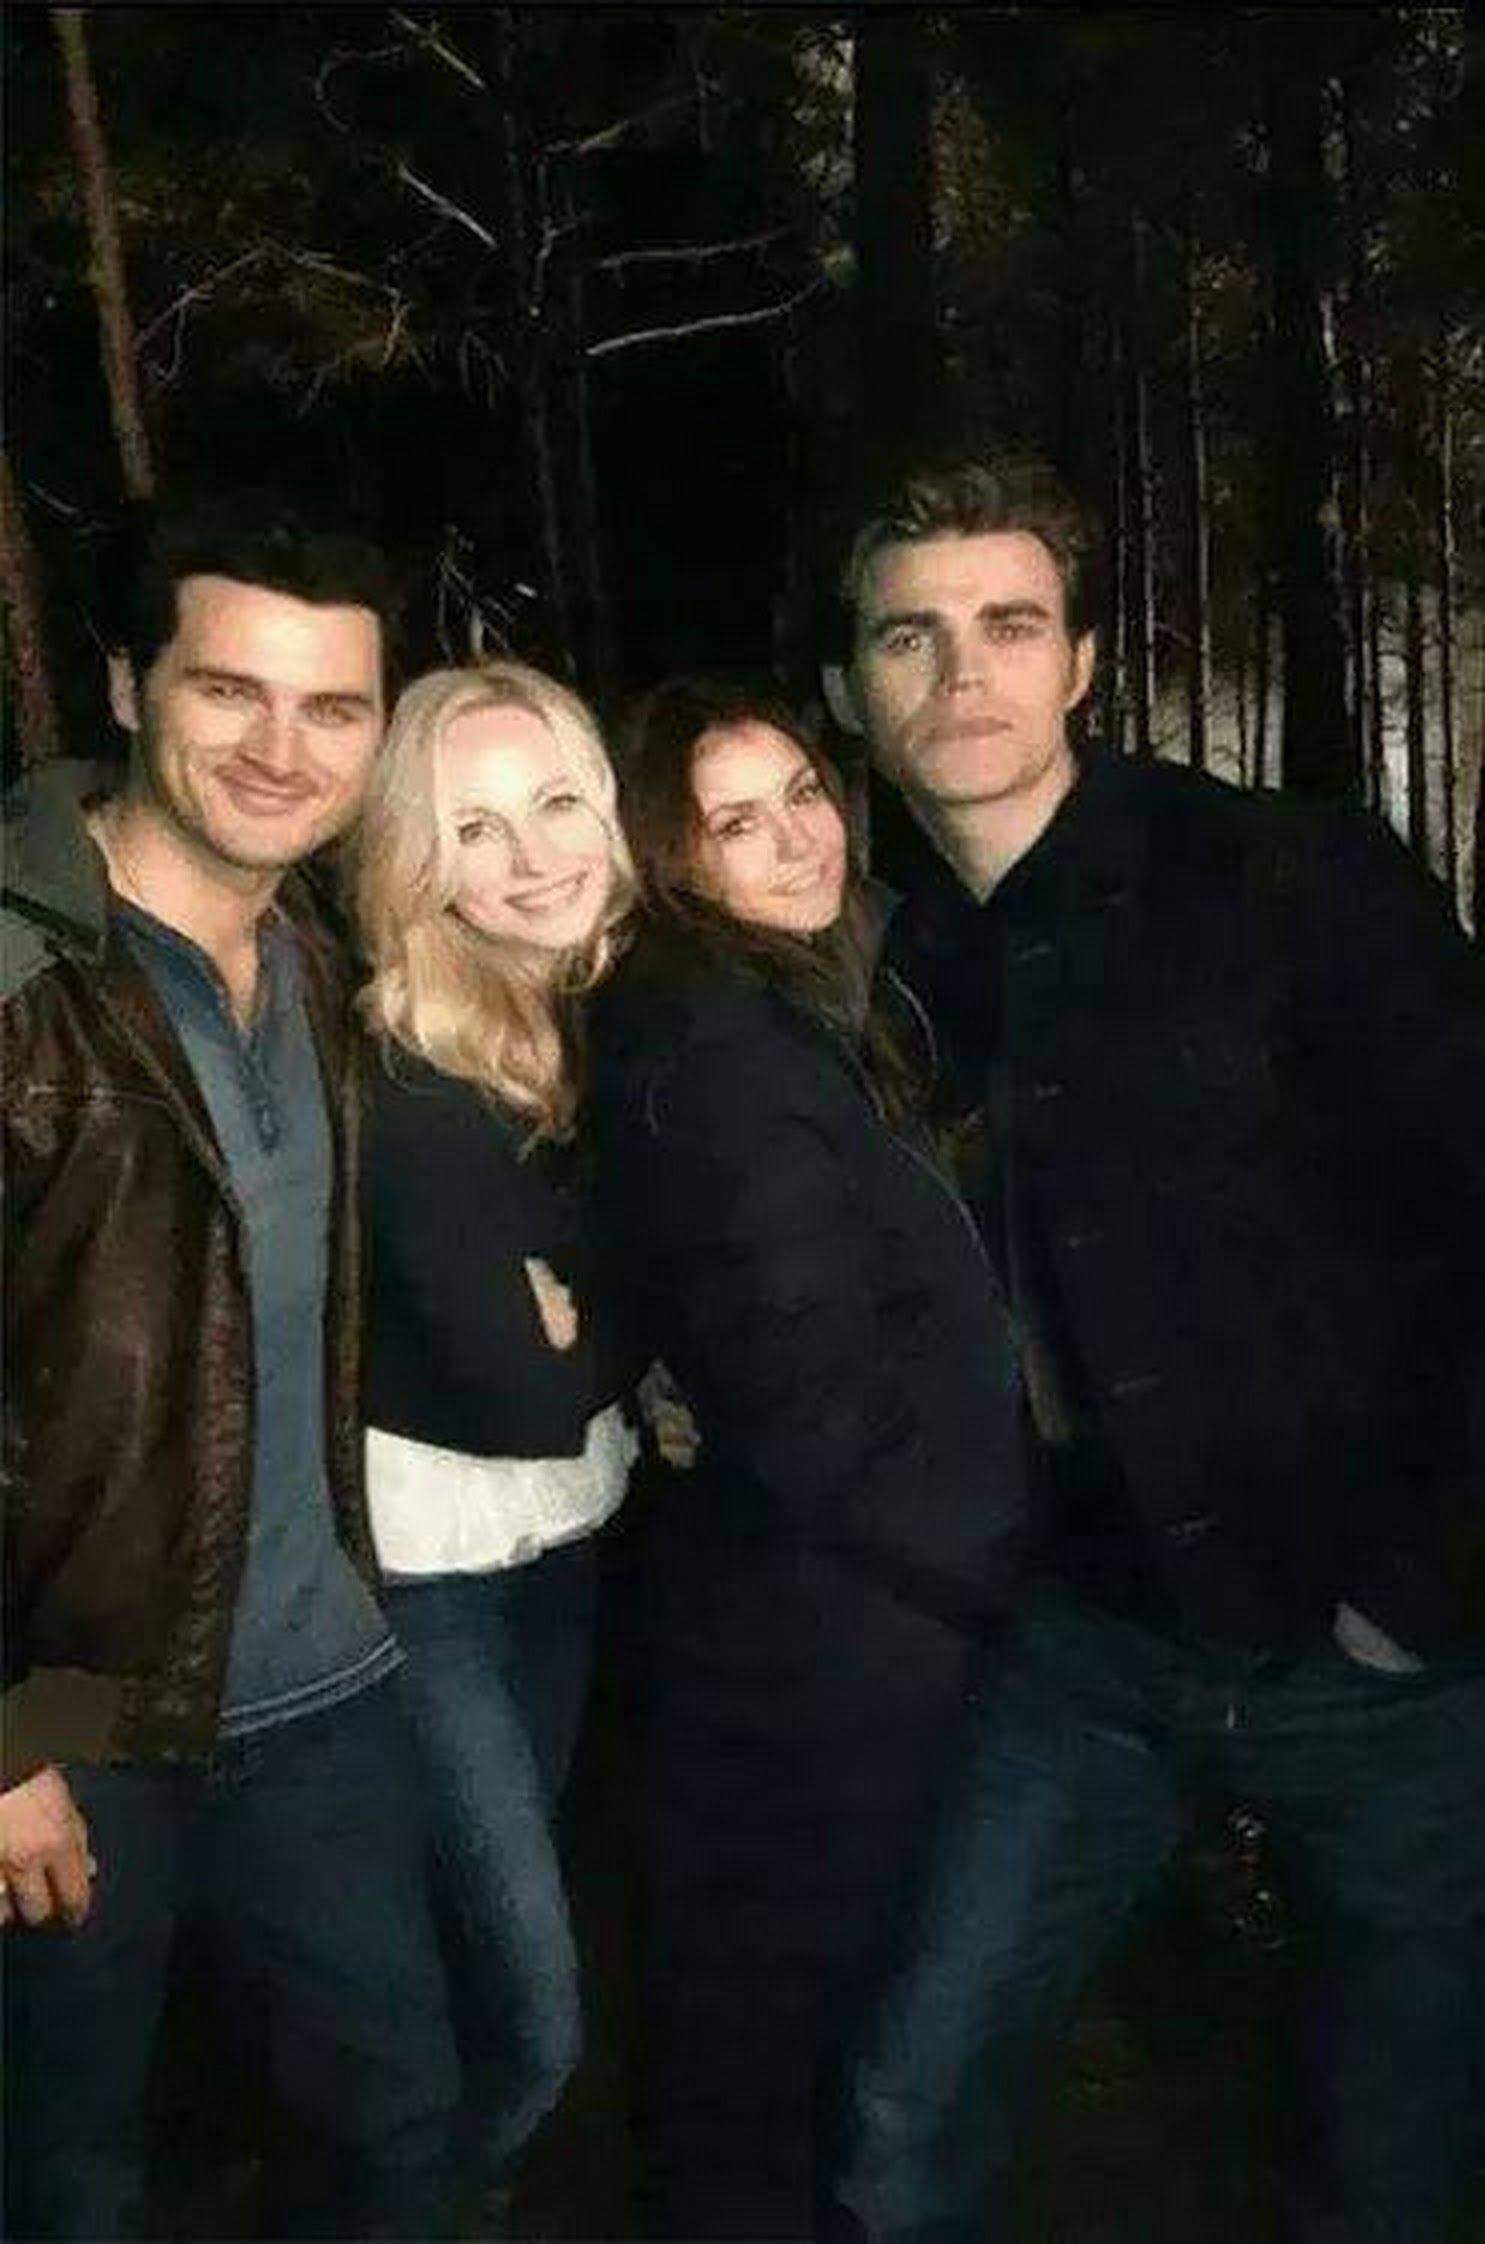 Pin by Cathy Smith on The Vampire Diaries cast in 2019 | Vampire